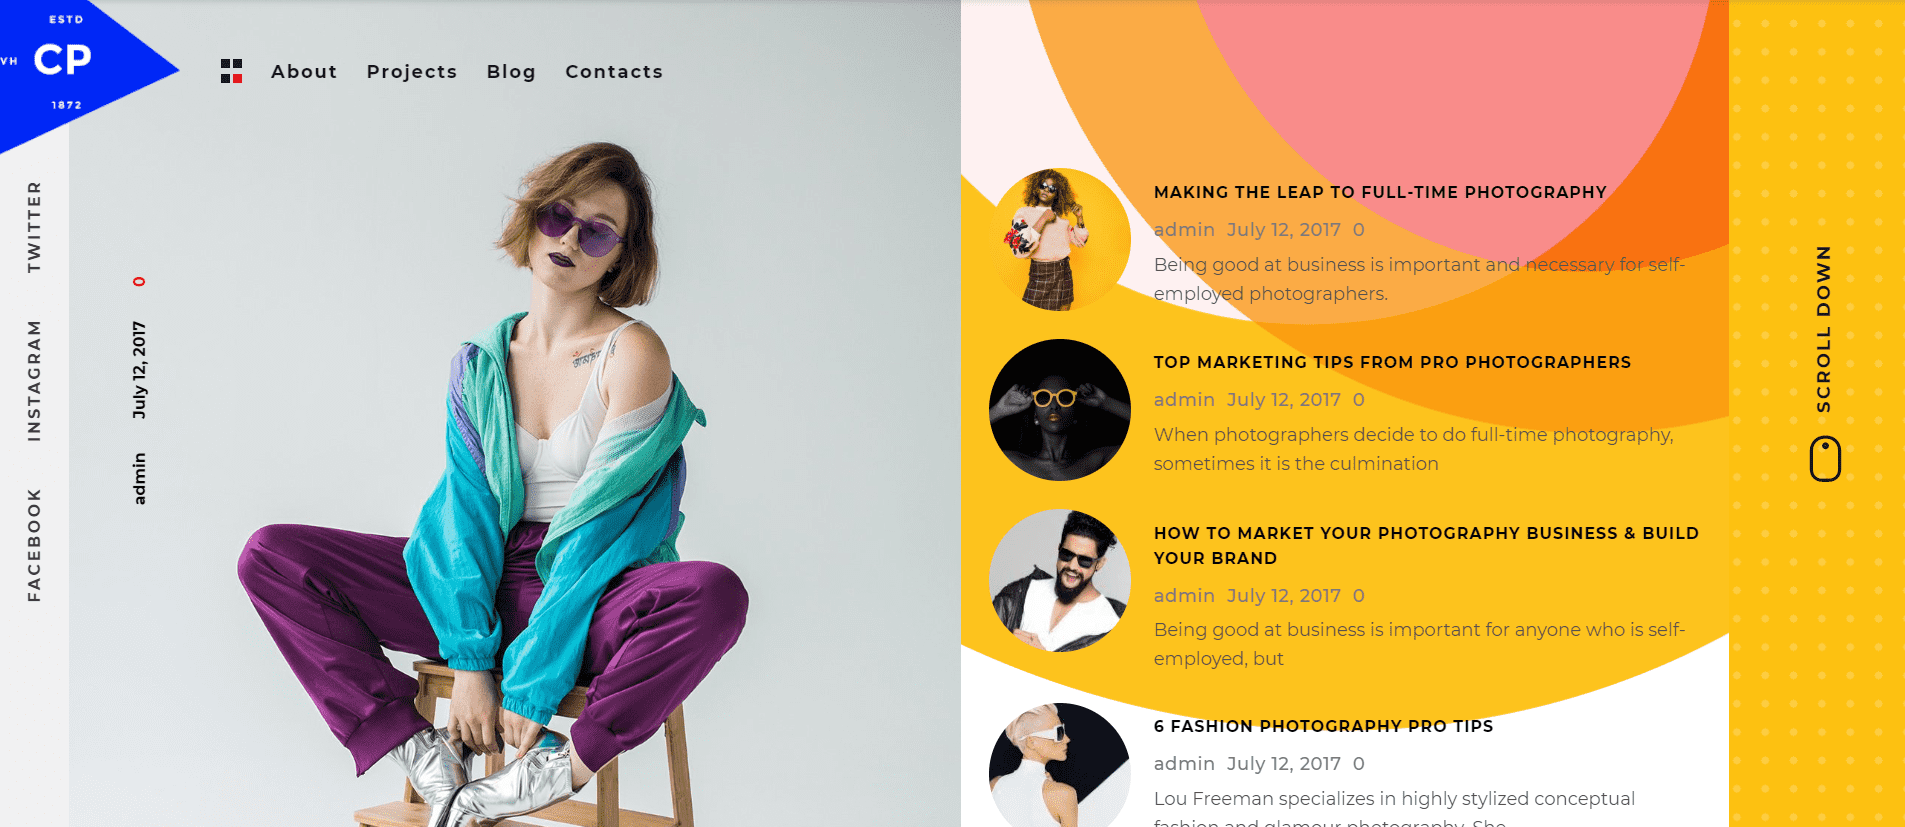 Bright and stylish for brave photographers.